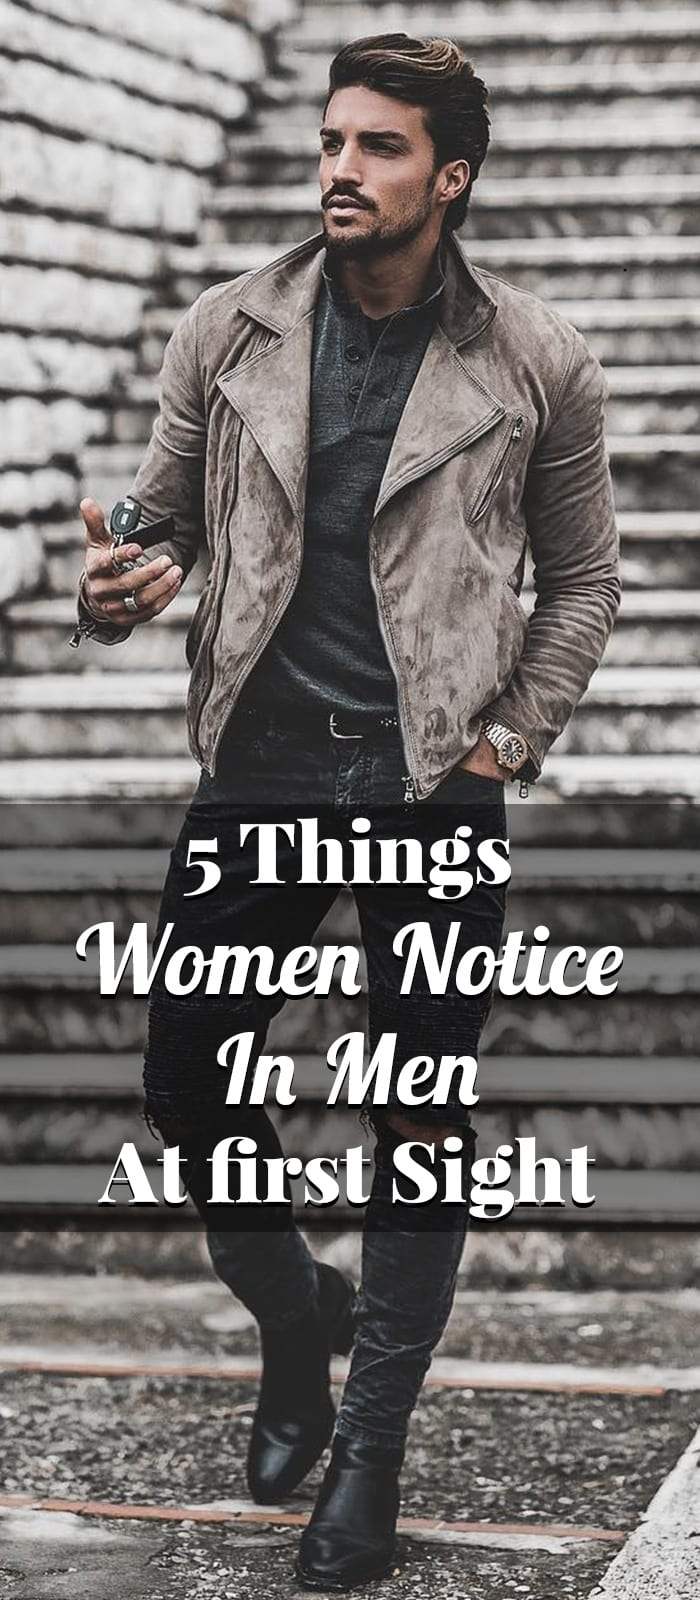 5 Things Women Notice In Men At first Sight